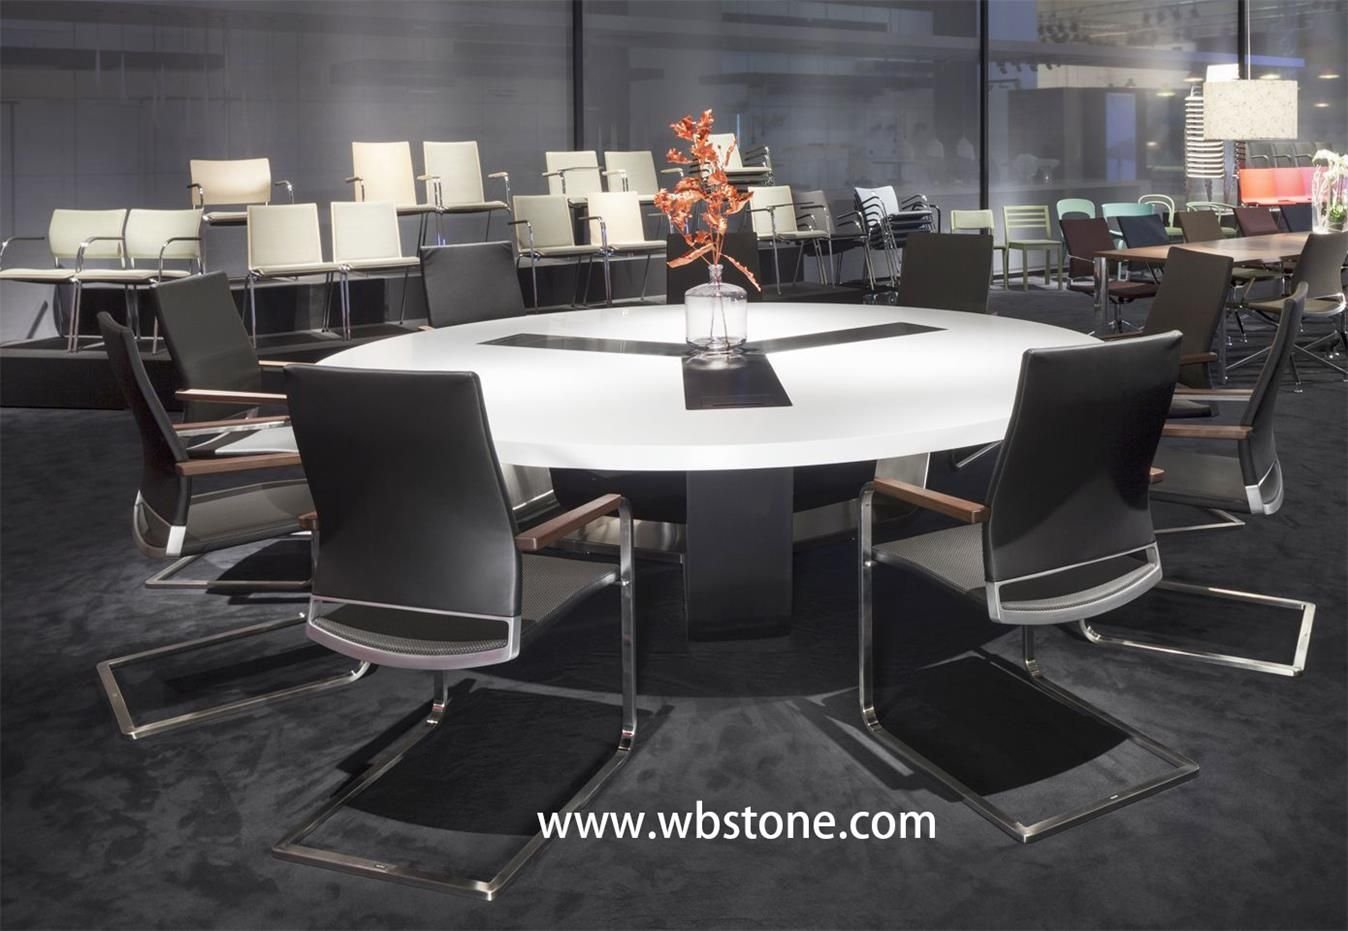 White Stone Top Conference Table Modern Design Round Shap Corian - Corian conference table